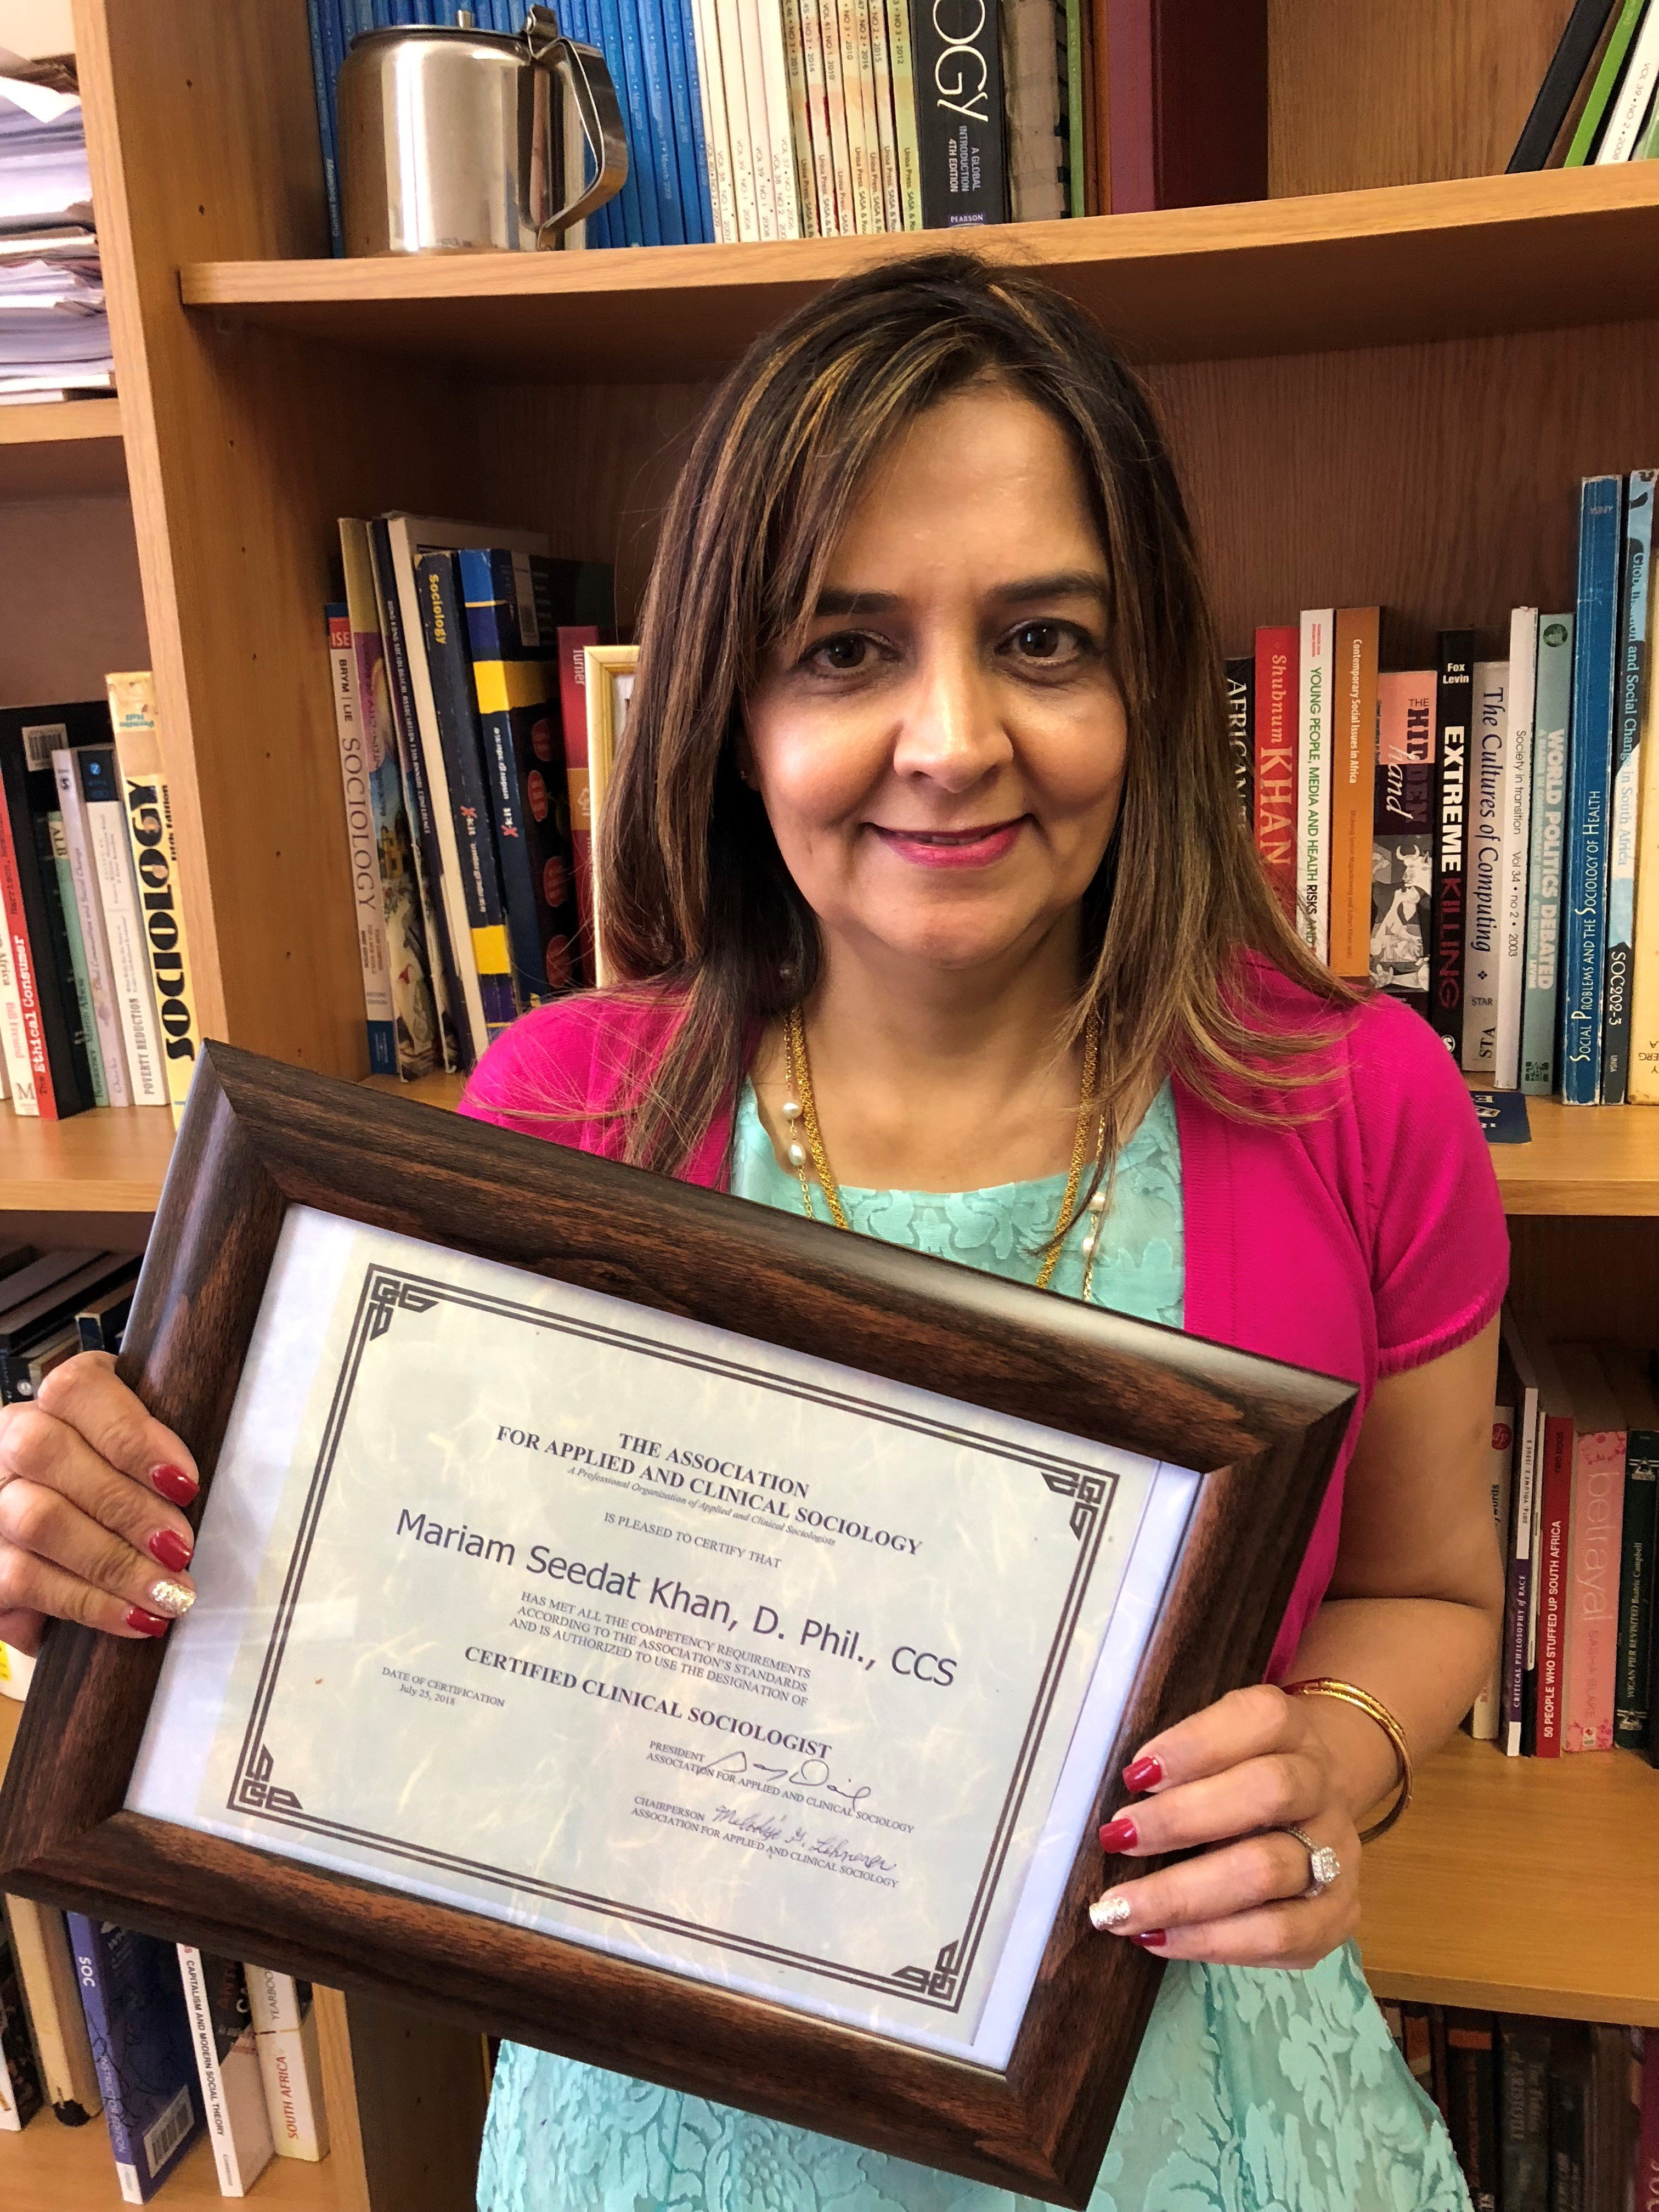 Mariam with her certificate from the Association for Applied and Clinical Sociology (AACS).  Source: Dr. Mariam Seedat Khan